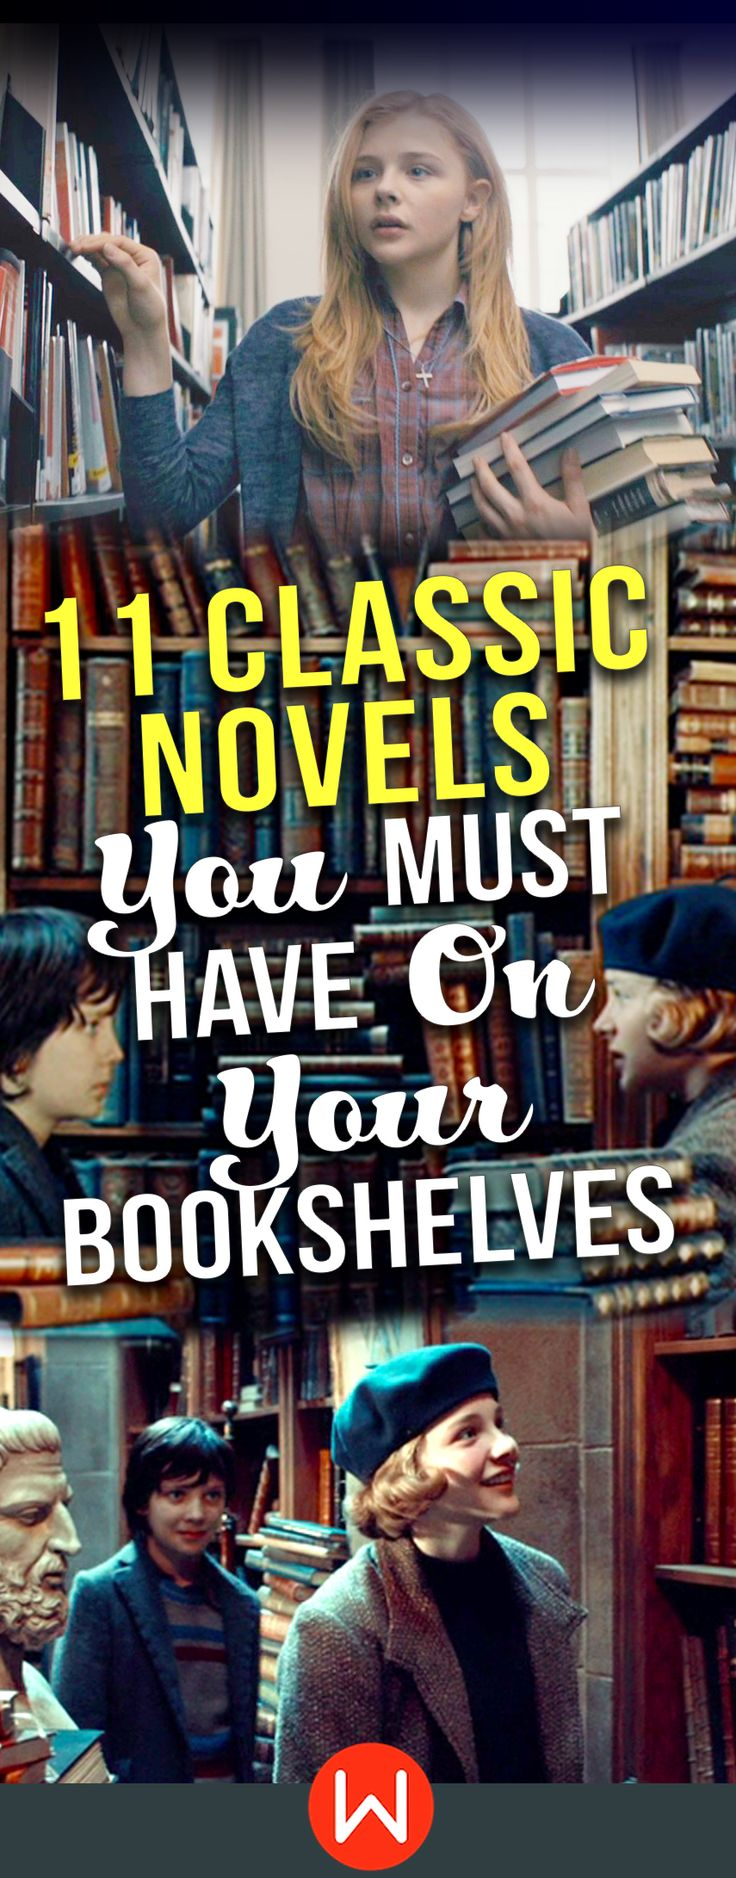 Classic Novels you MUST have on your bookshelves. Here's a list of must-have Novels of all times. Timeless Classic Novels and where to find them, including Brave New World by Aldous Huxley, The Alchemist by Paulo Coelho and True Grit by Charles Portis. Classic Novels inspiration.